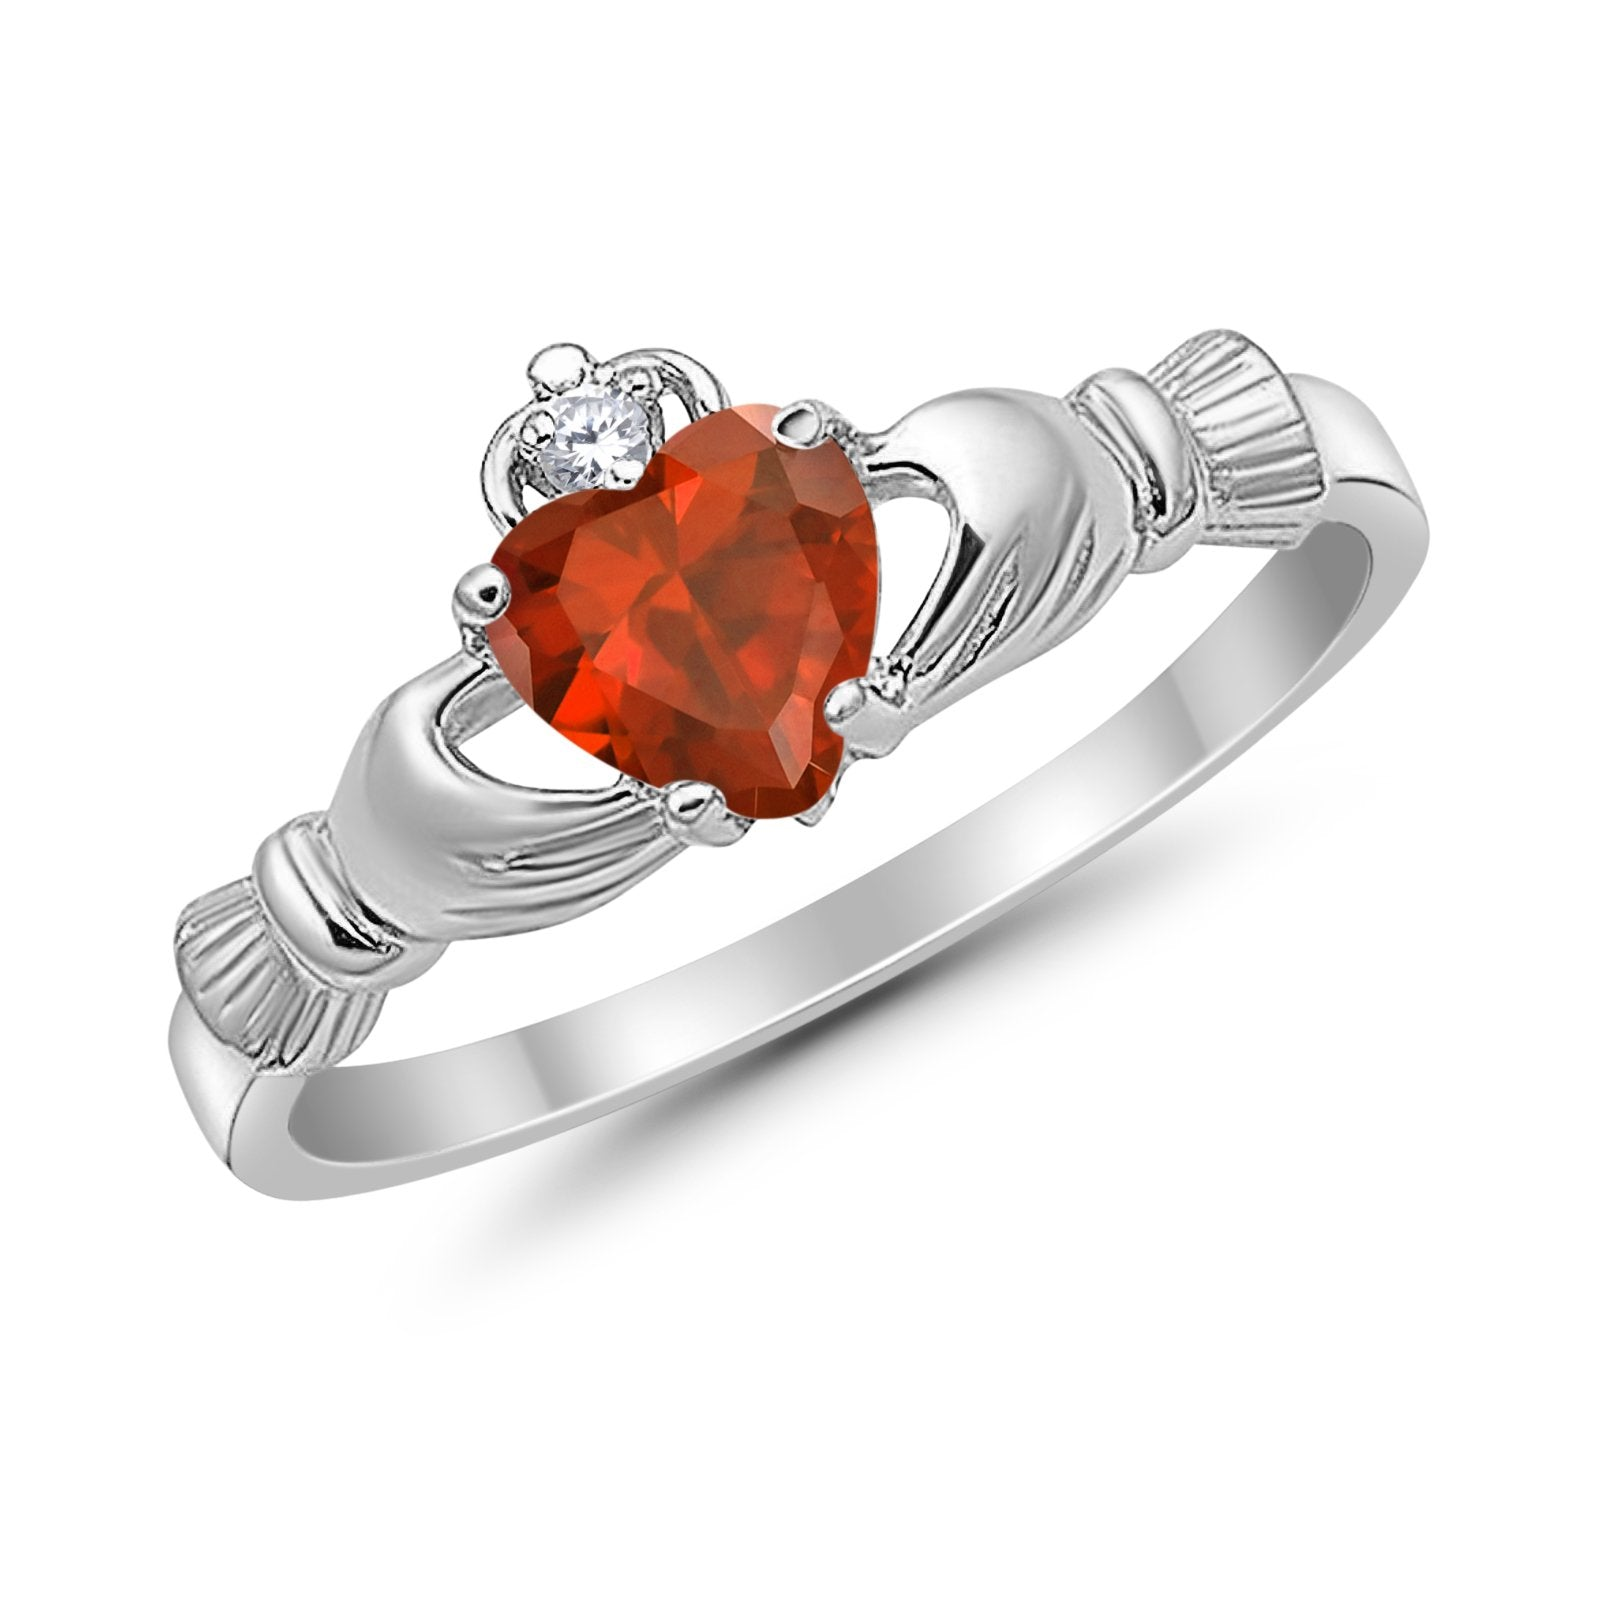 Heart Shape Simulated Cubic Zirconia Claddagh Wedding Ring 925 Sterling Silver